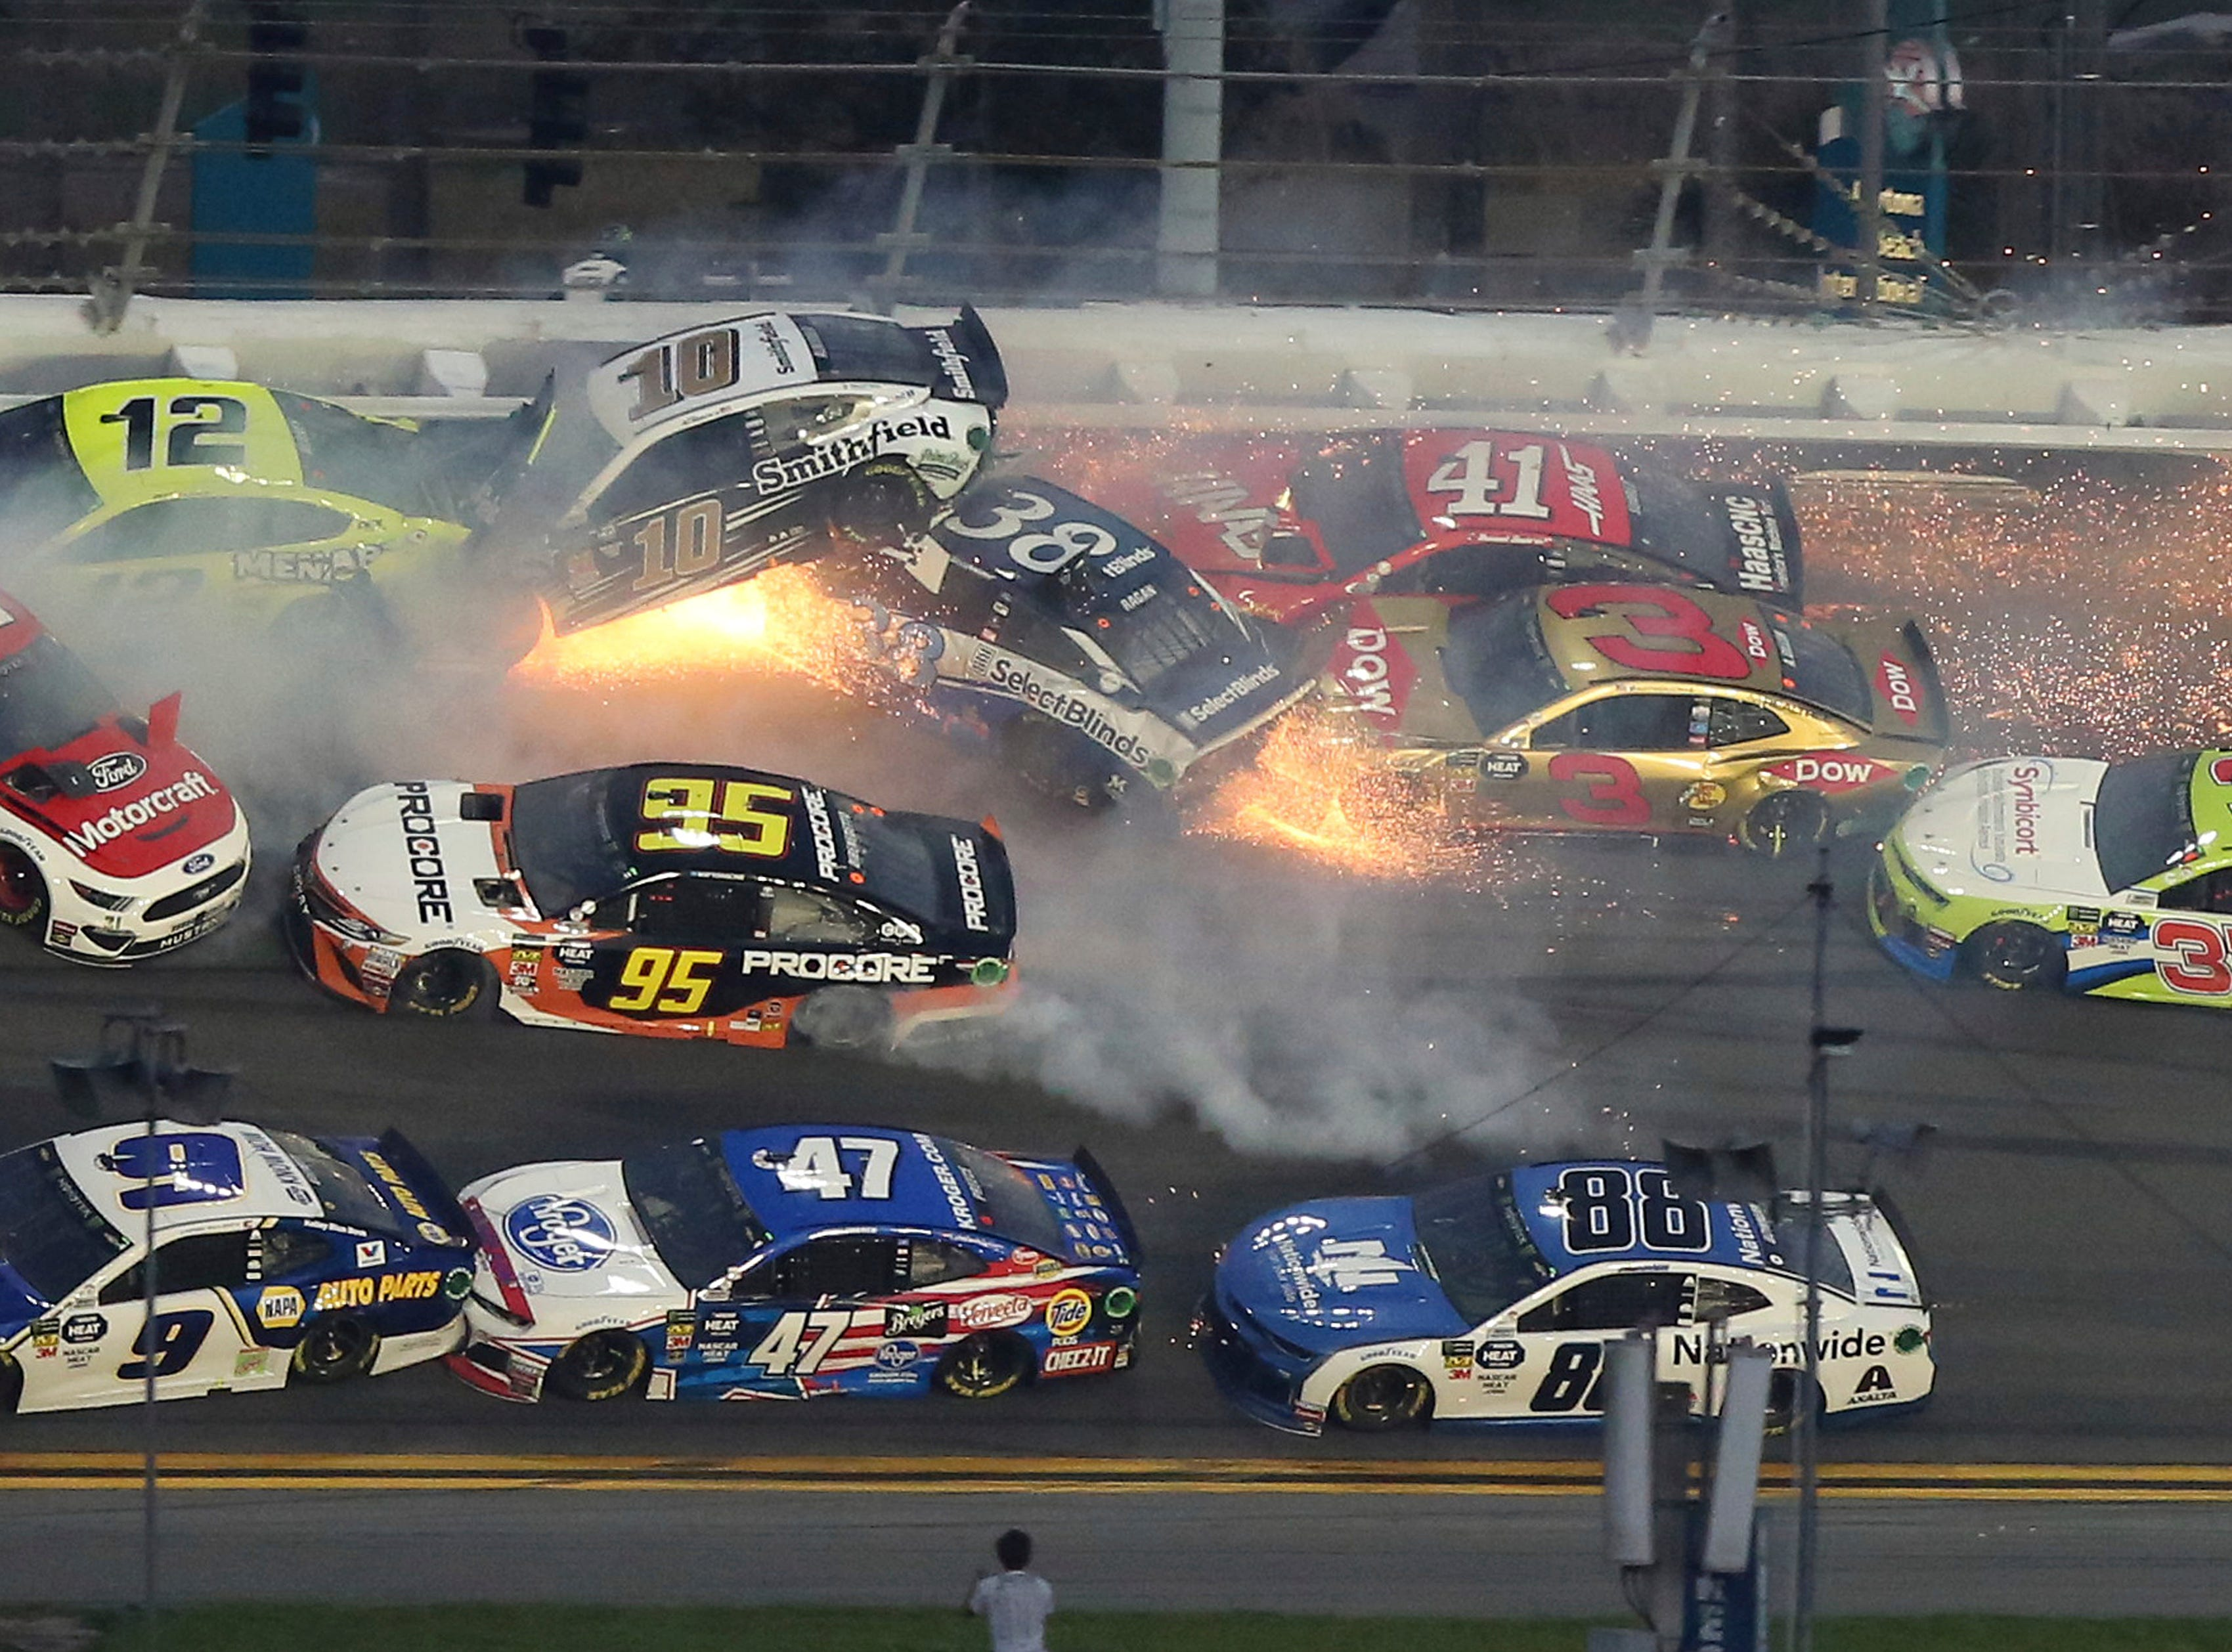 Multiple cars crash during a NASCAR Daytona 500 auto race Sunday, Feb. 17, 2019, at Daytona International Speedway in Daytona Beach, Fla.